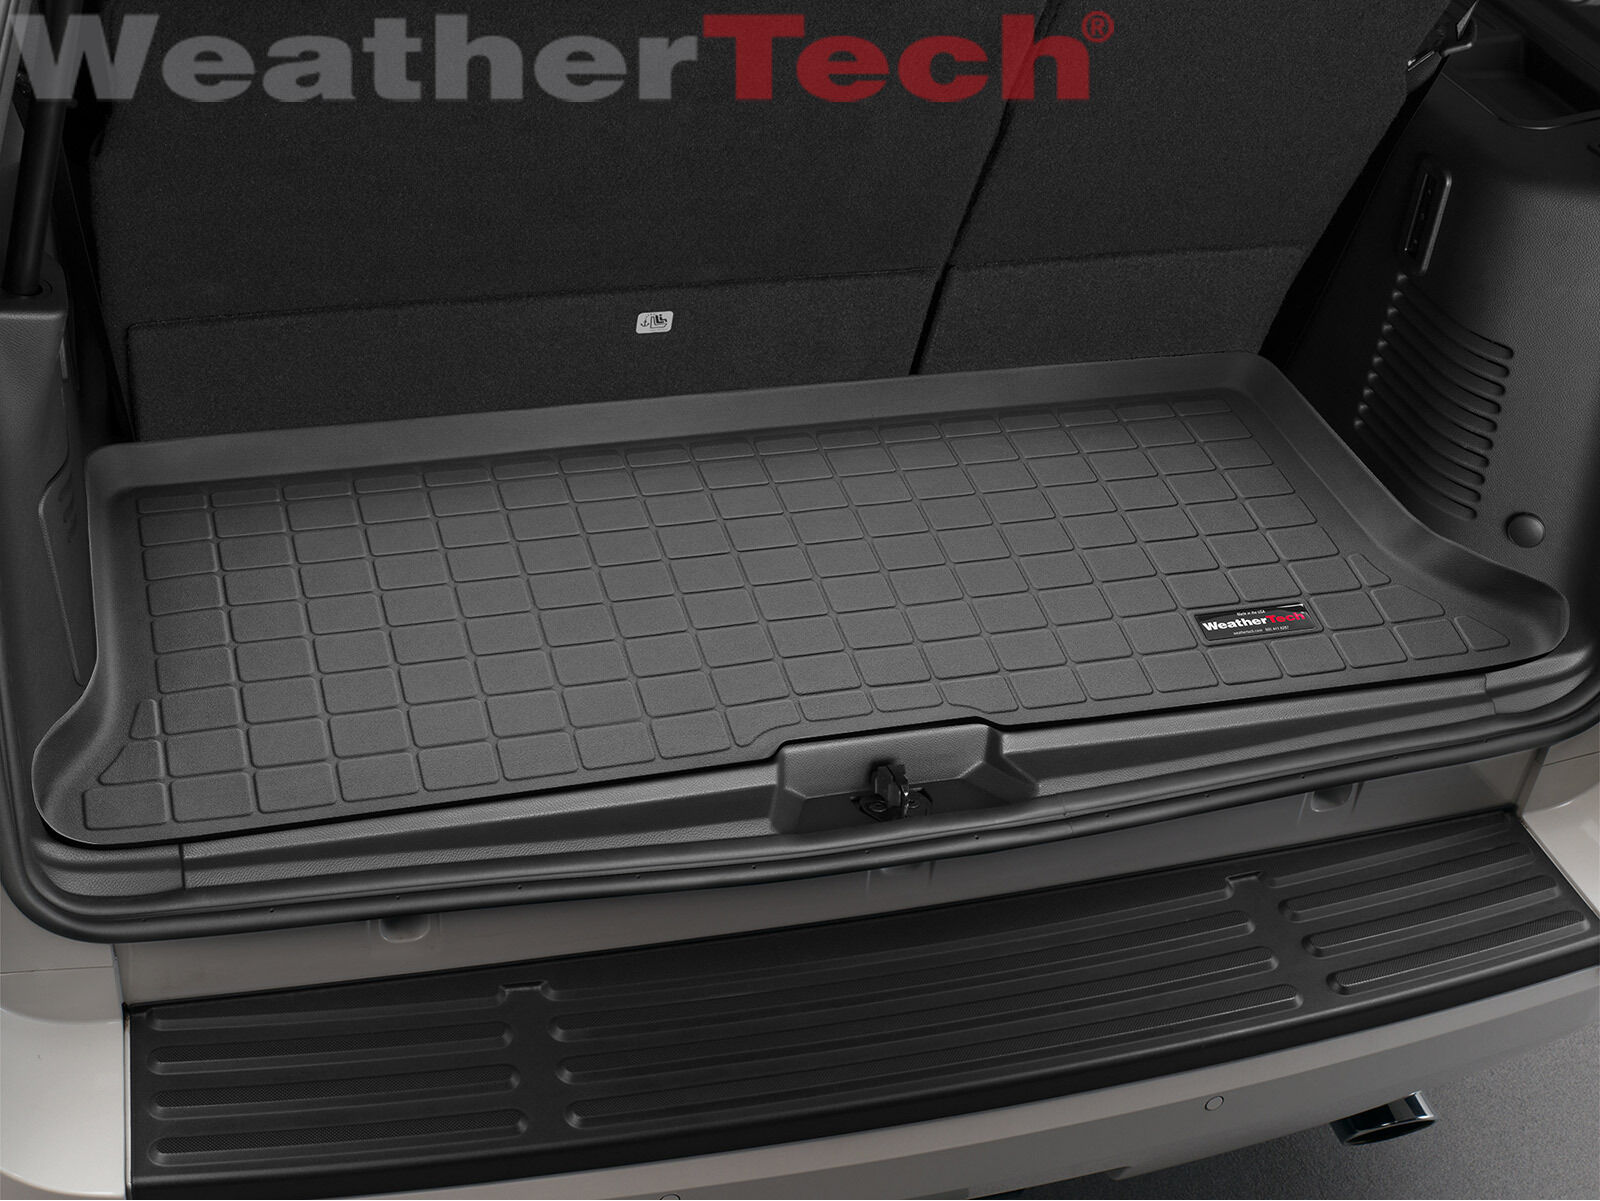 Weathertech Cargo Liner For Ford Expedition Lincoln Navigator Small Black Ebay